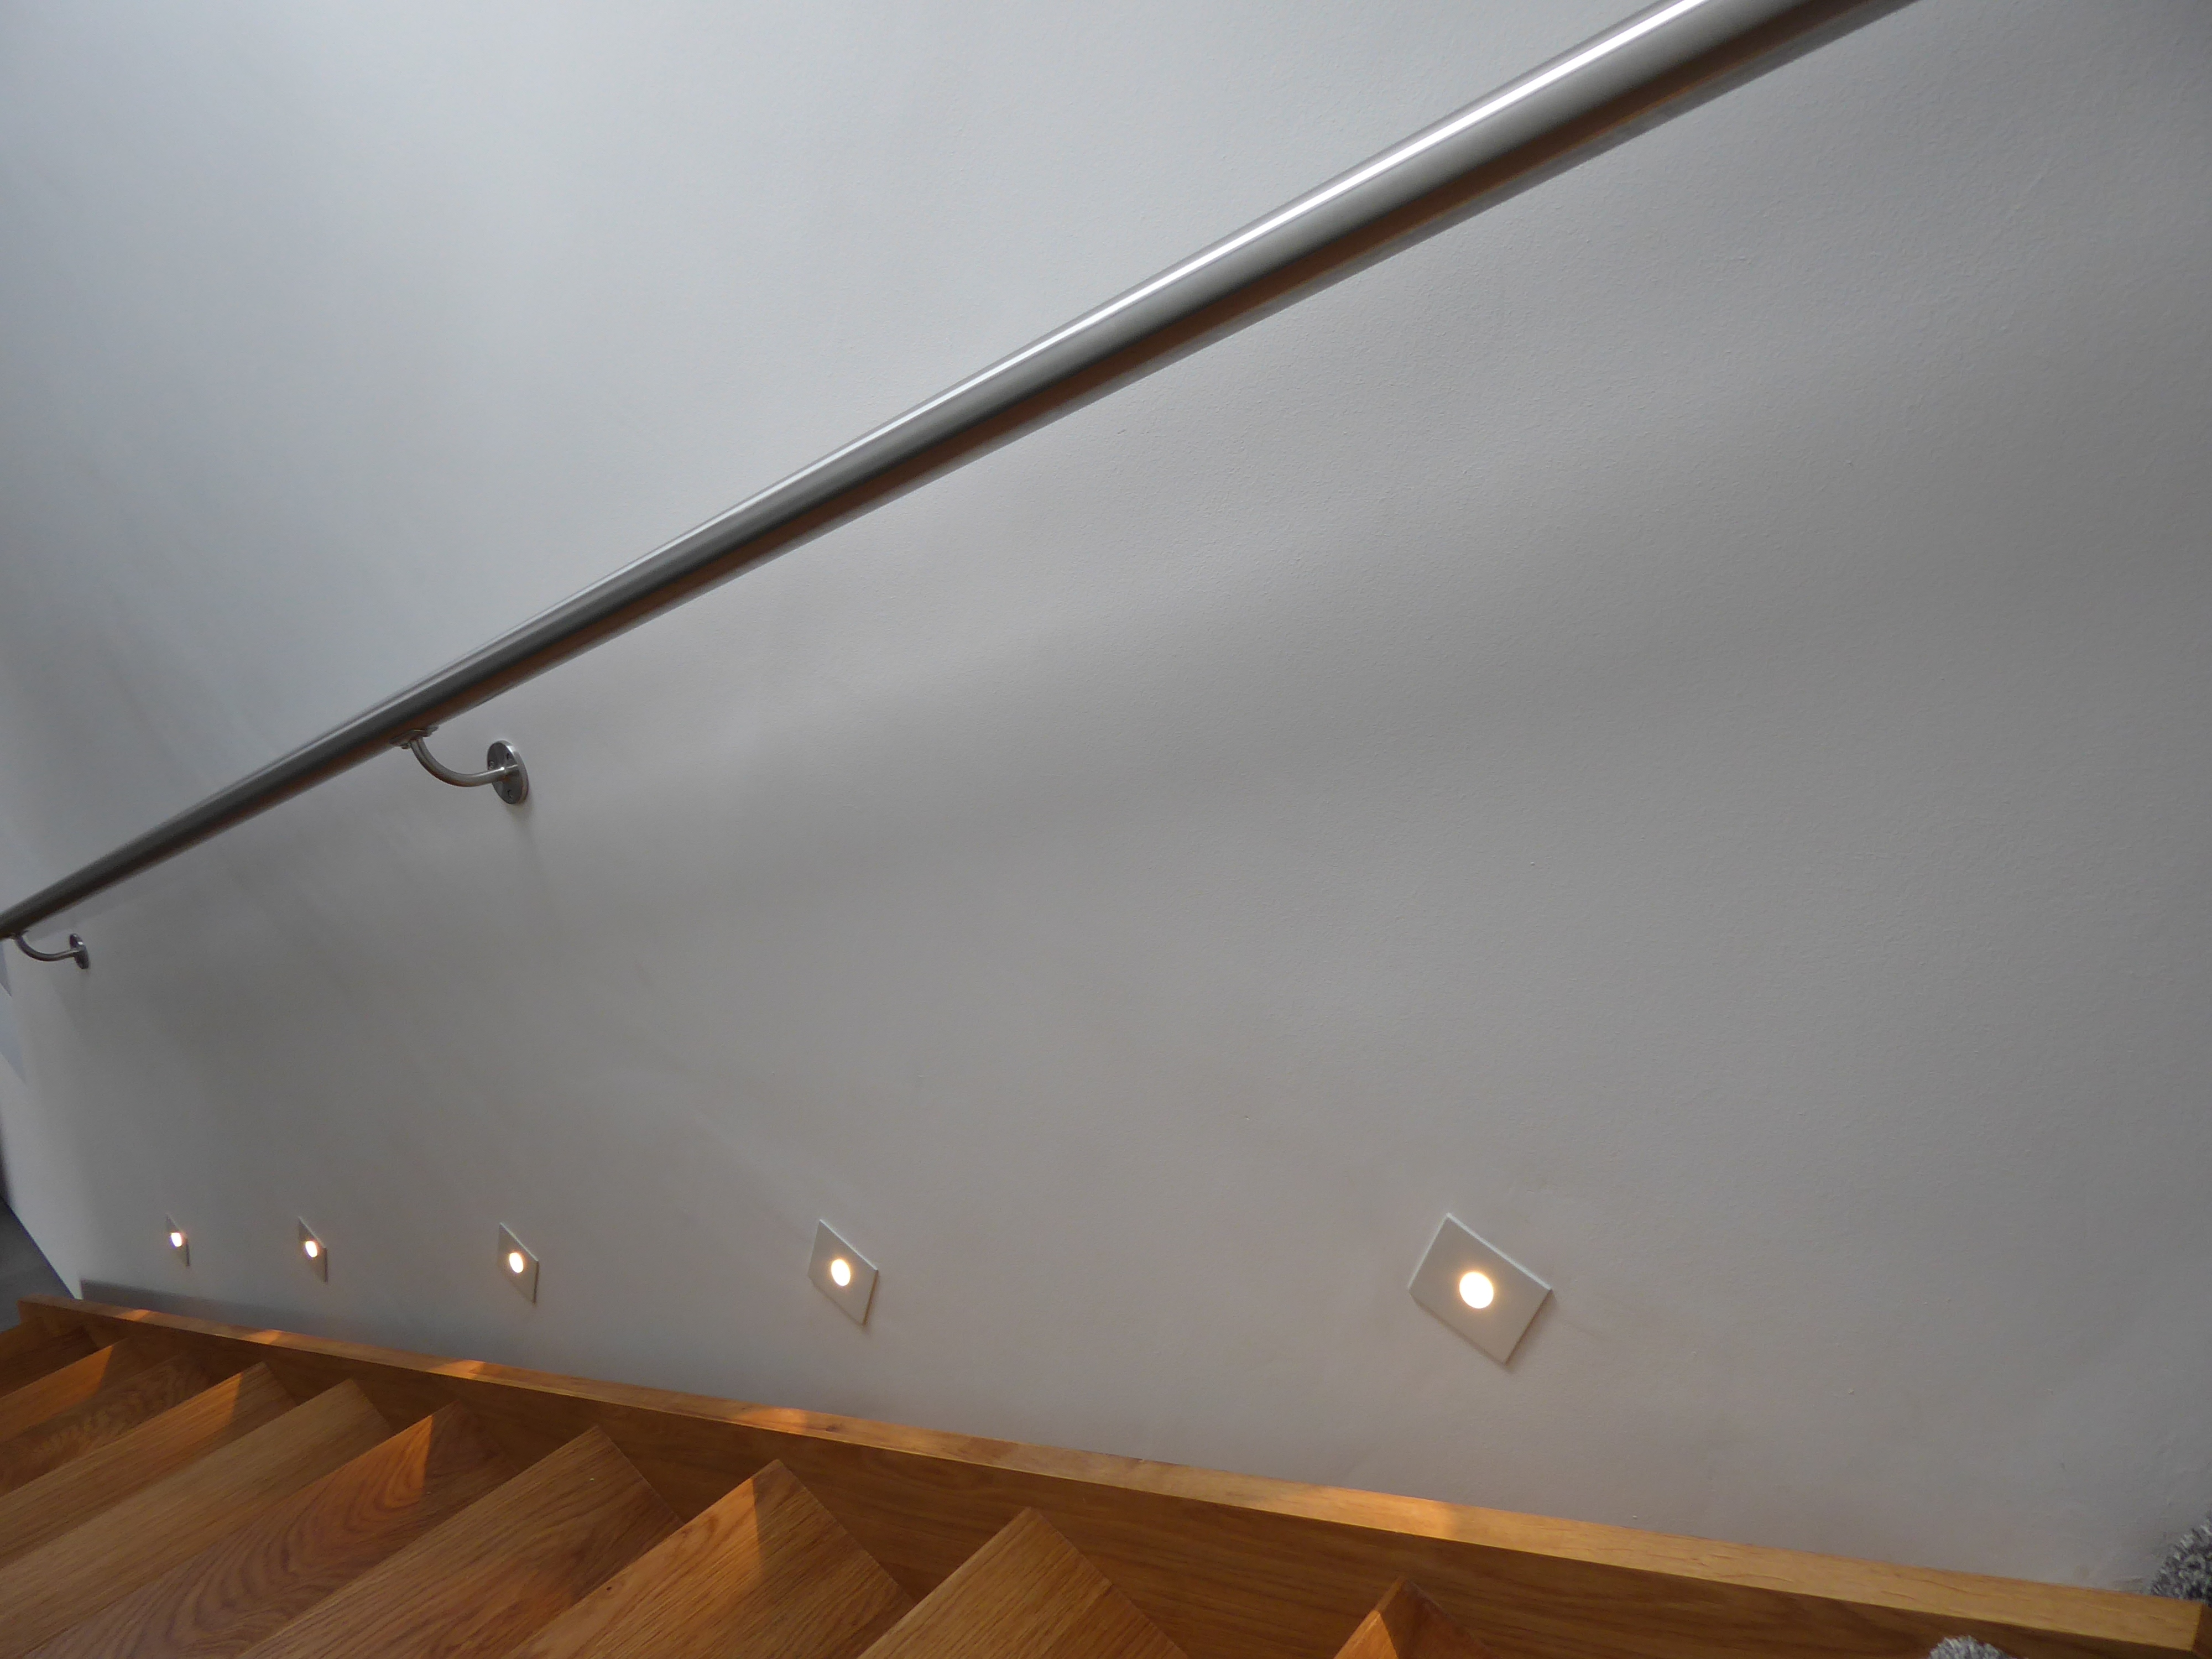 Reduced size stait lights